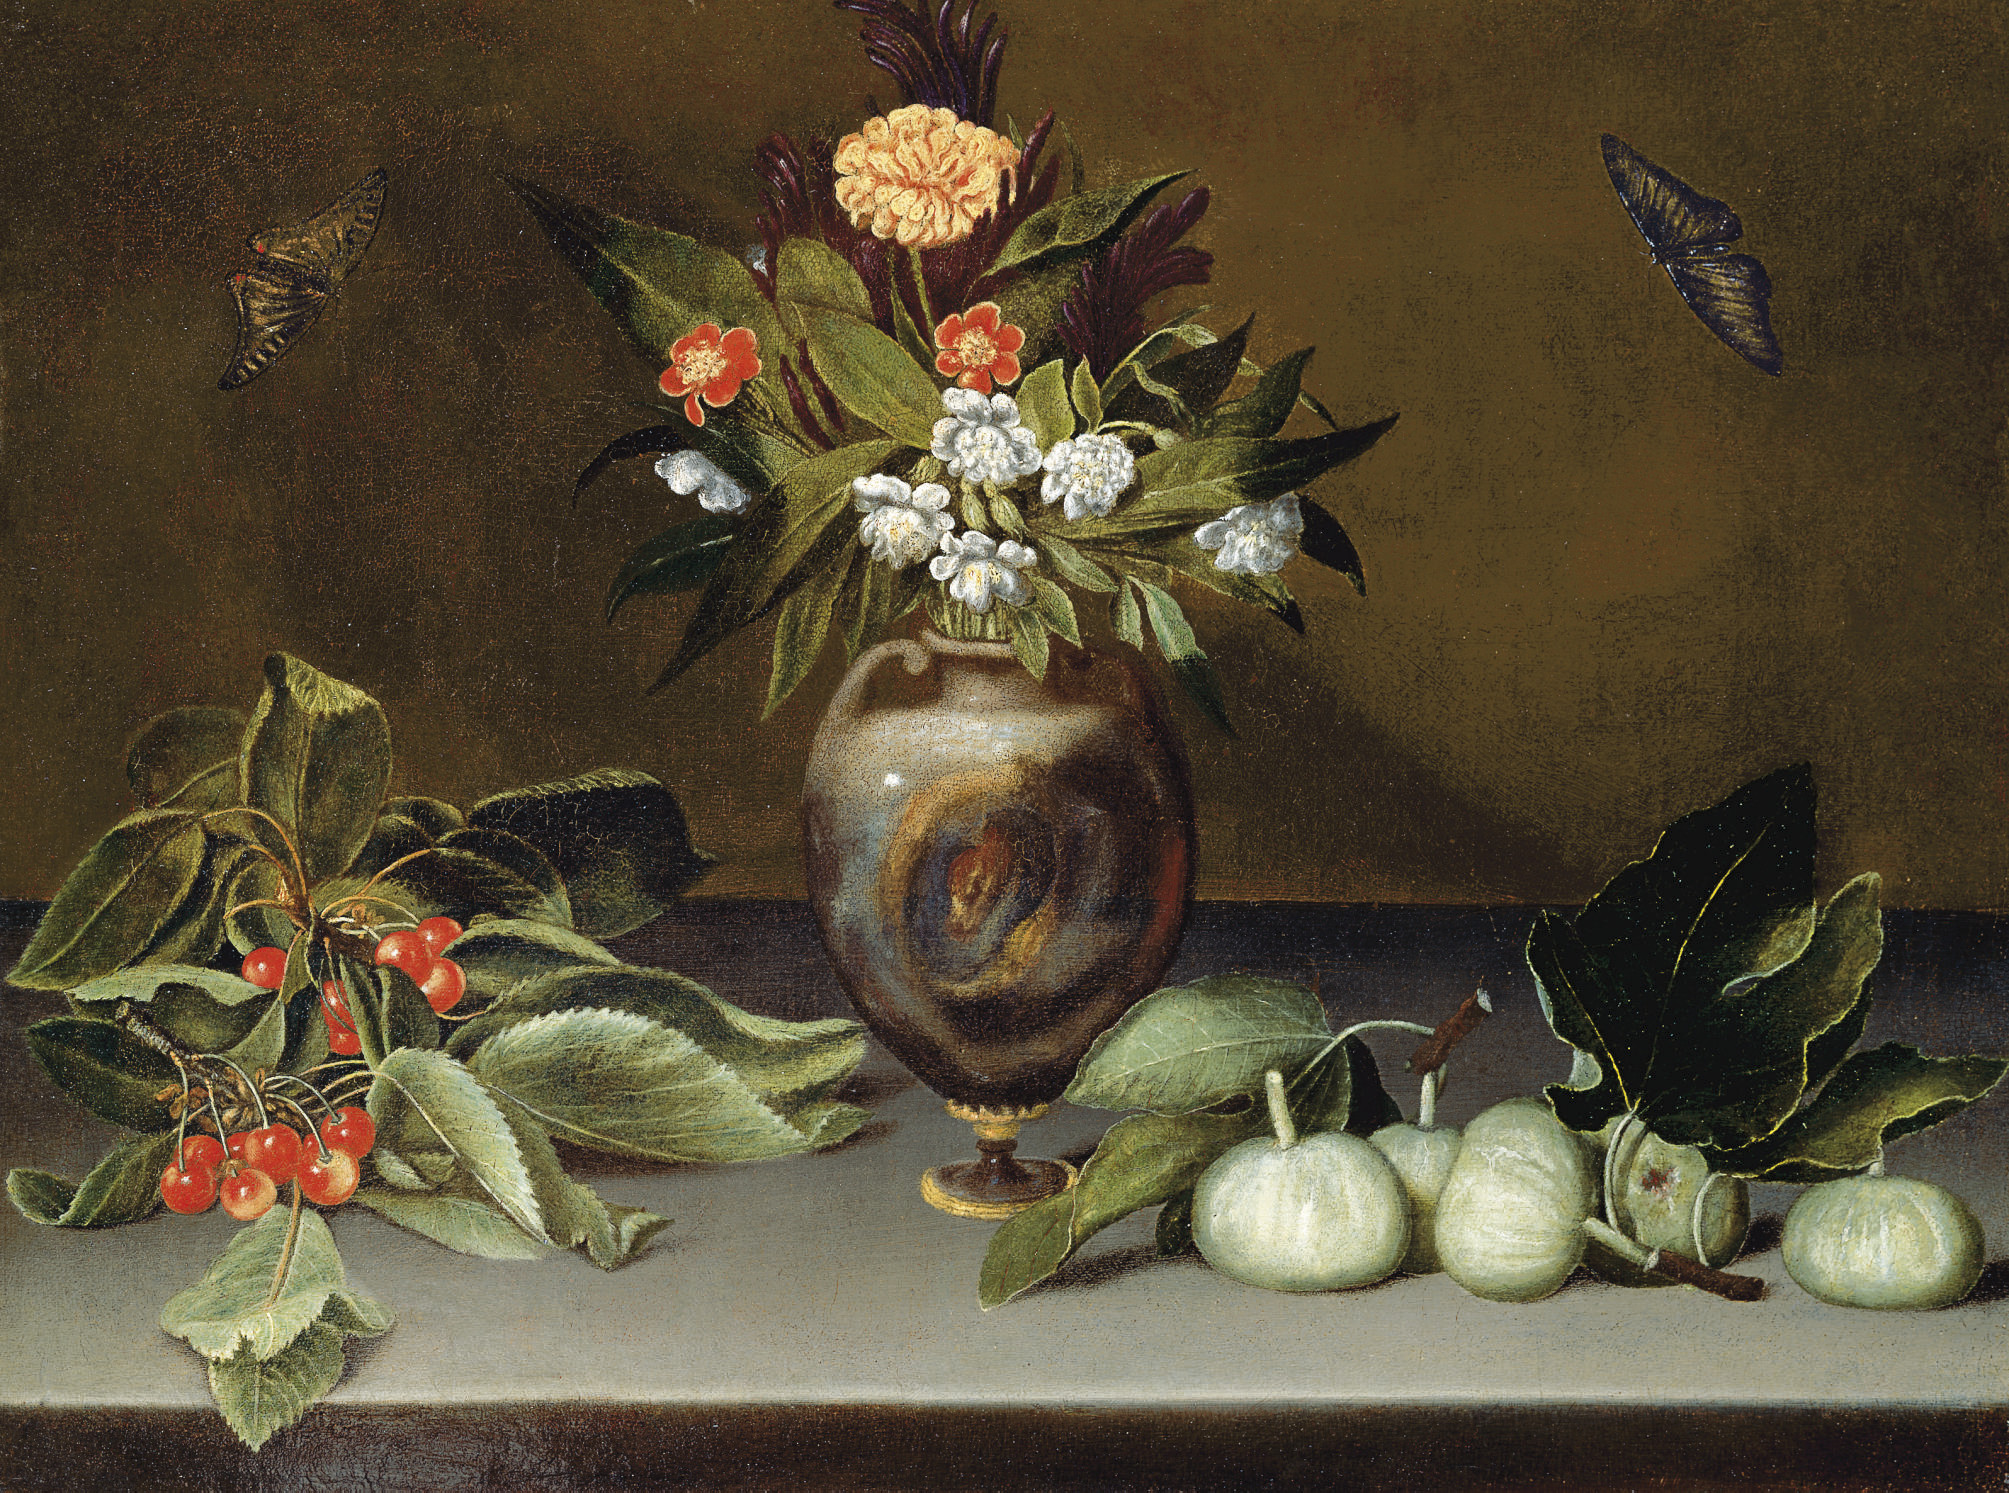 Narcissi and a carnation in an urn on a stone ledge with cherries, figs and butterflies